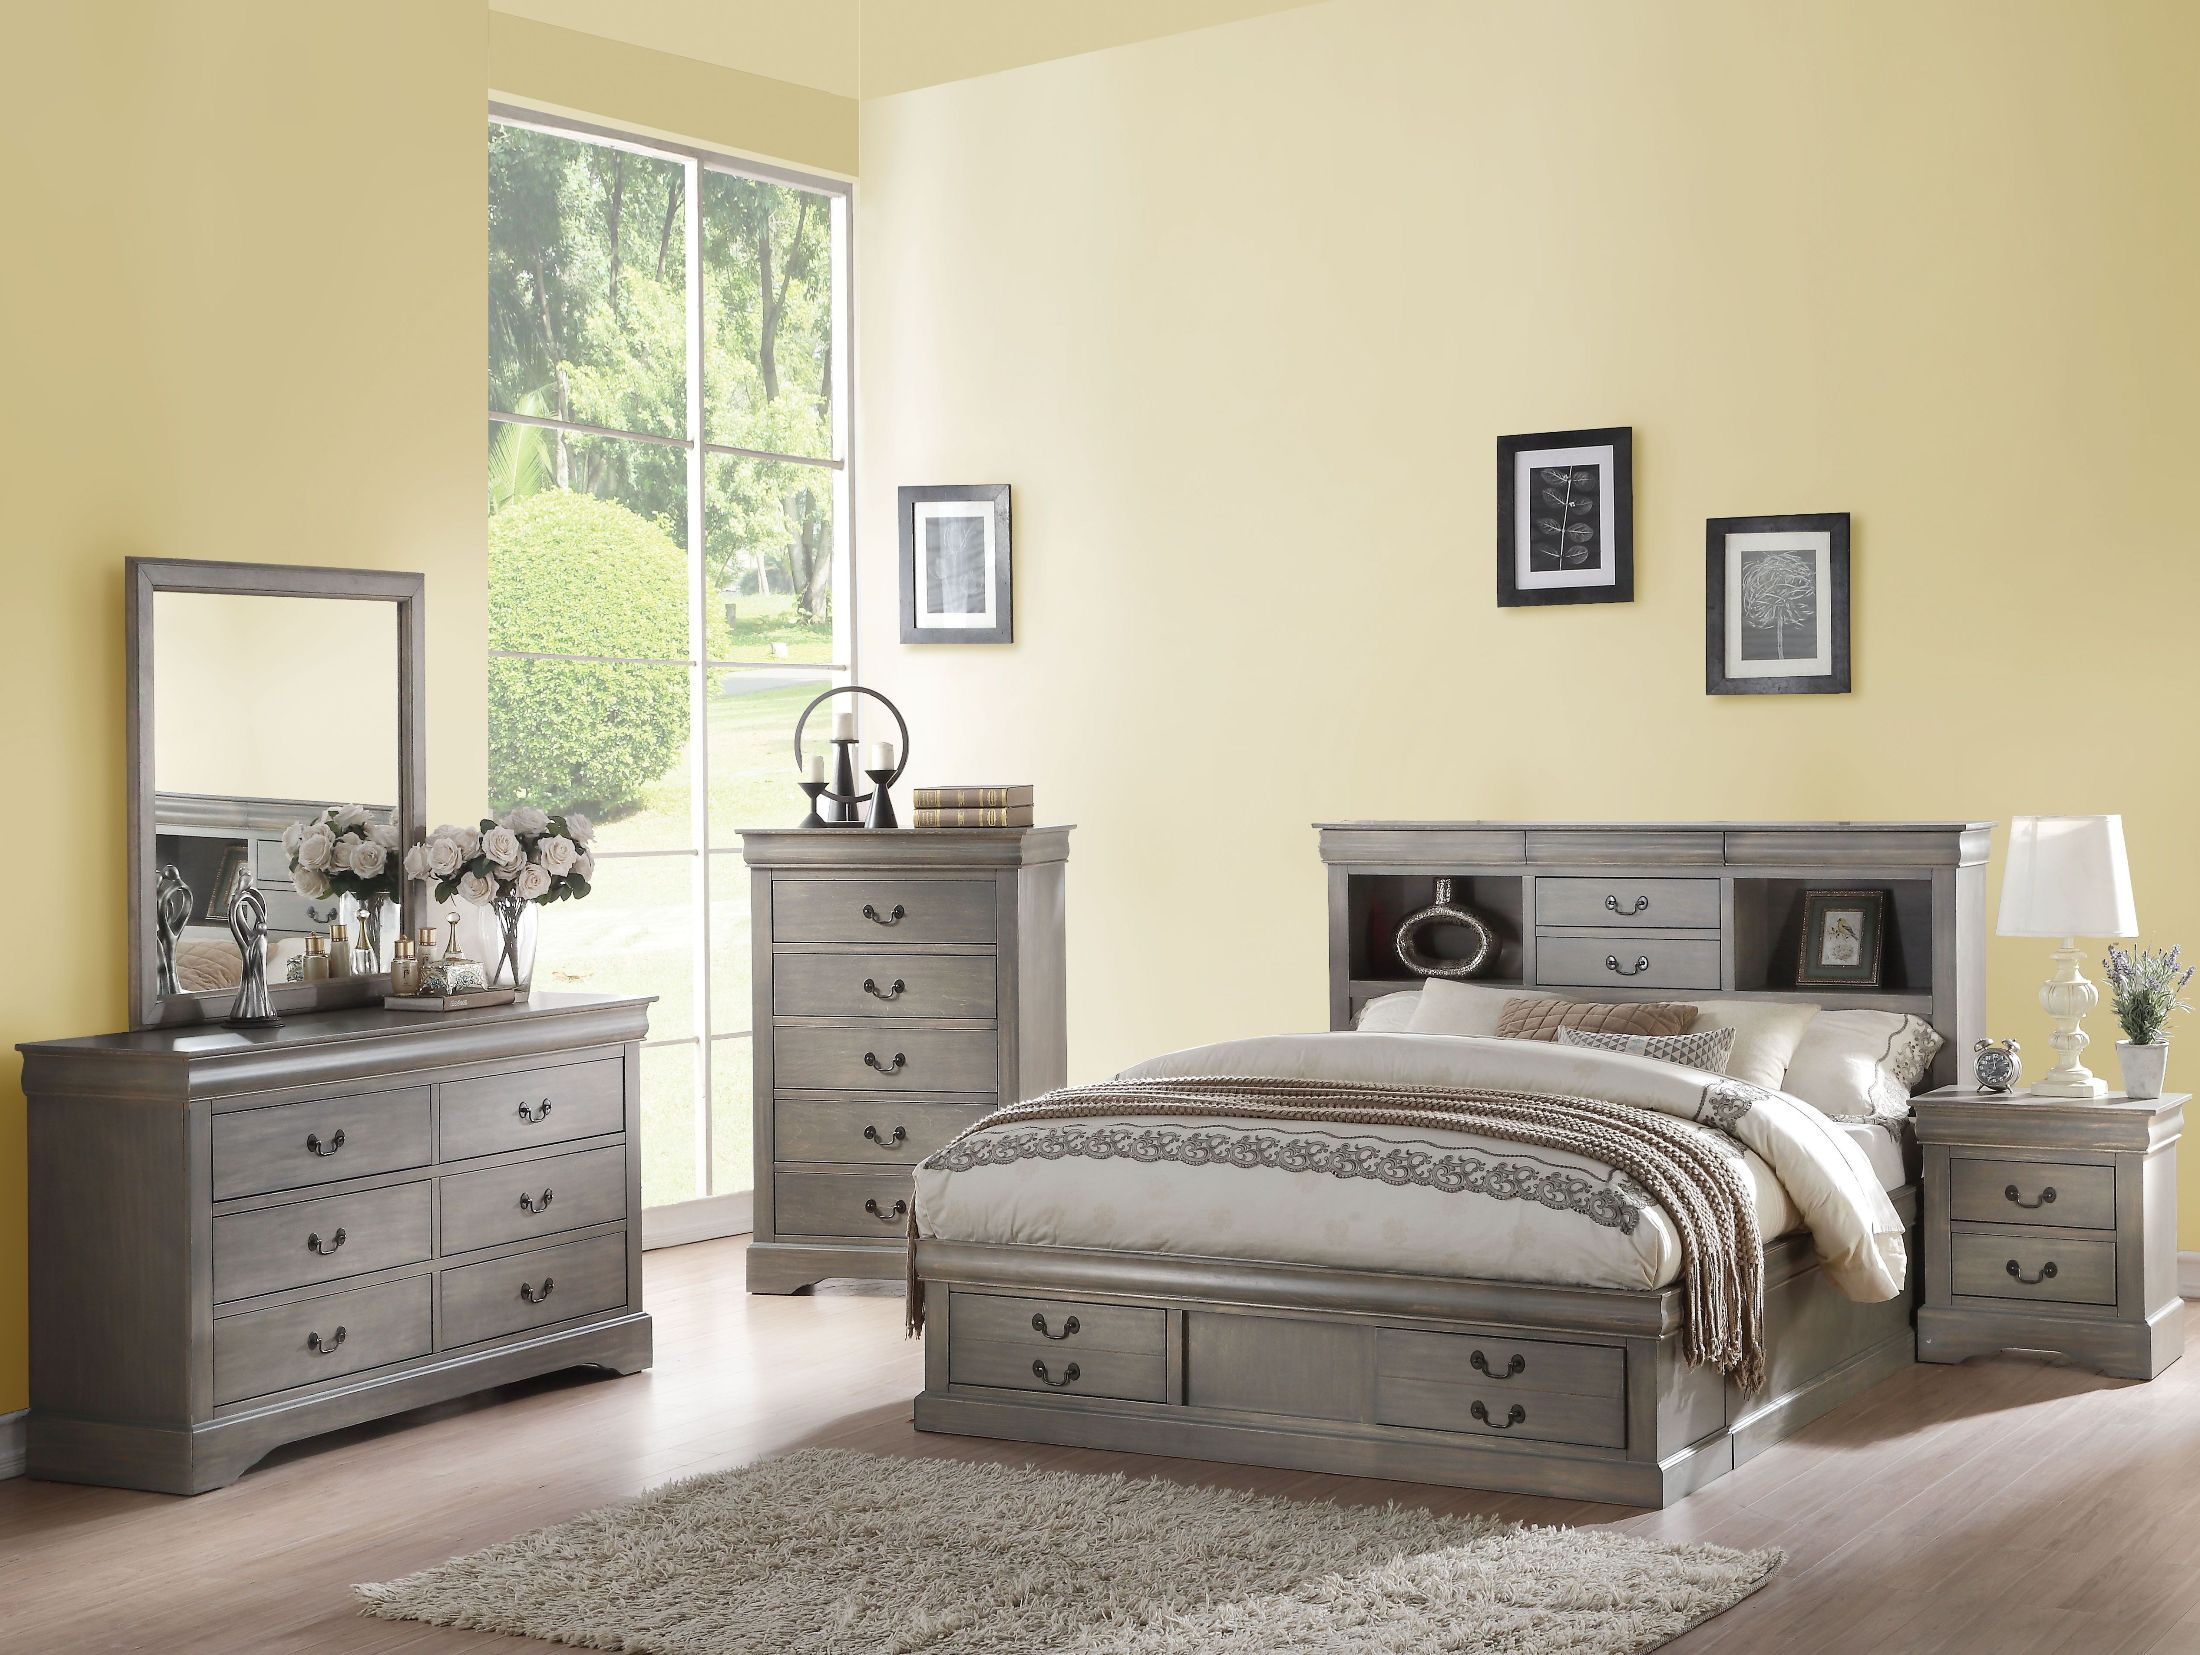 Acme louis philippe iii antique gray bookcase storage - Louis philippe bedroom collection ...